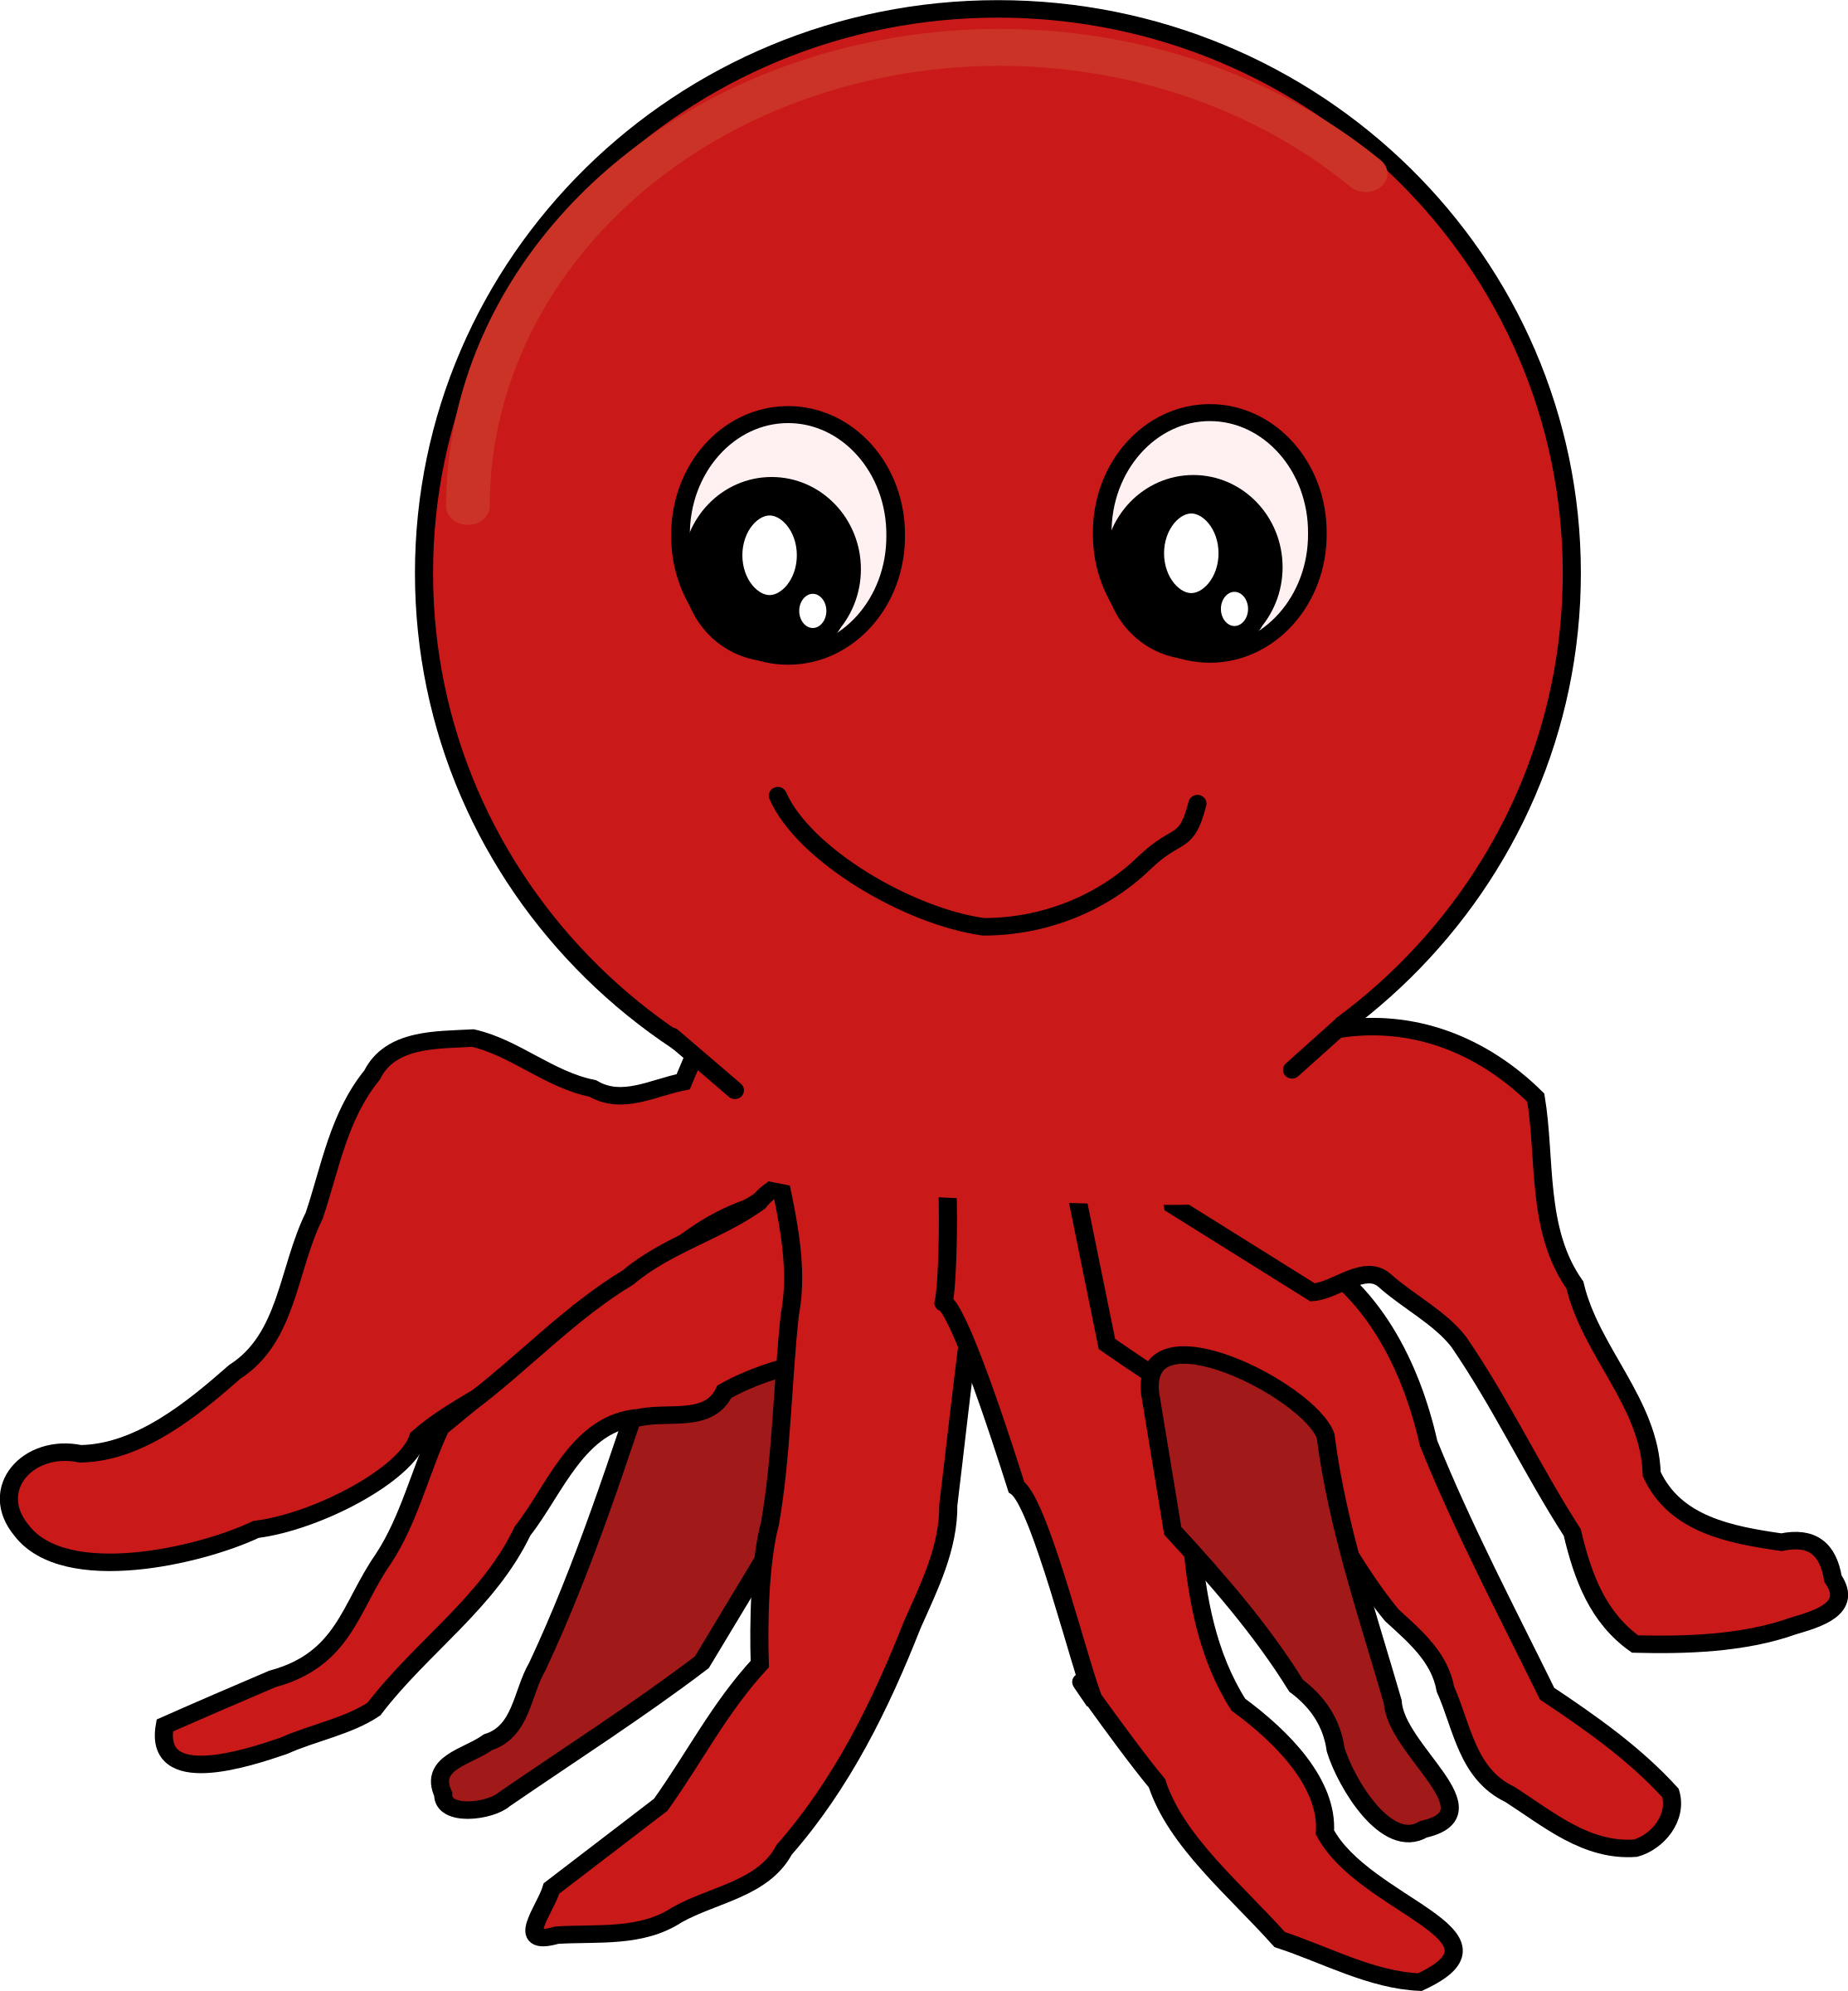 Red Cartoon Octopus by j4p4n | thing to do new | Pinterest | Cartoon